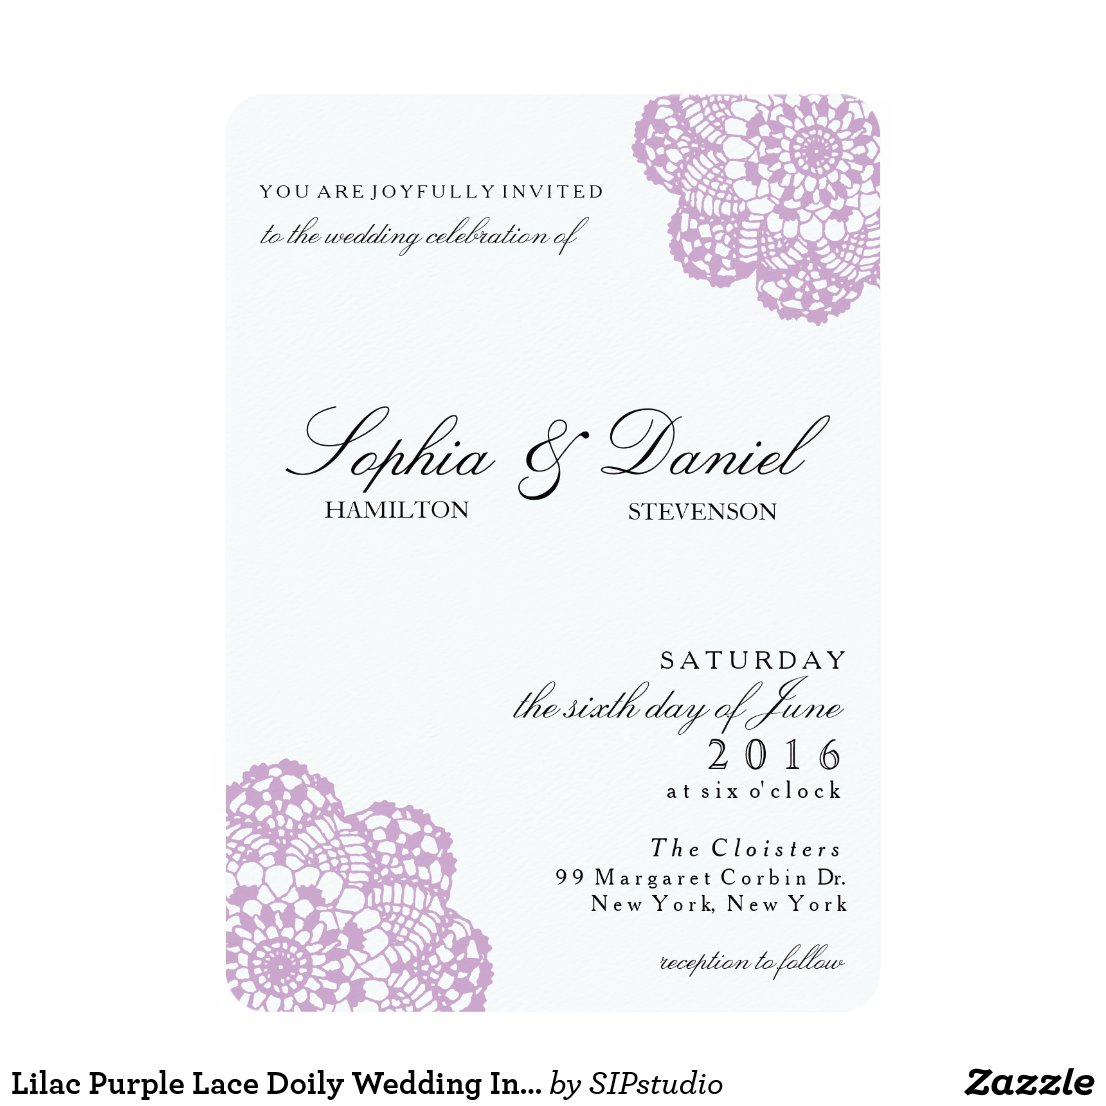 Lilac Purple Lace Doily Wedding Invitation